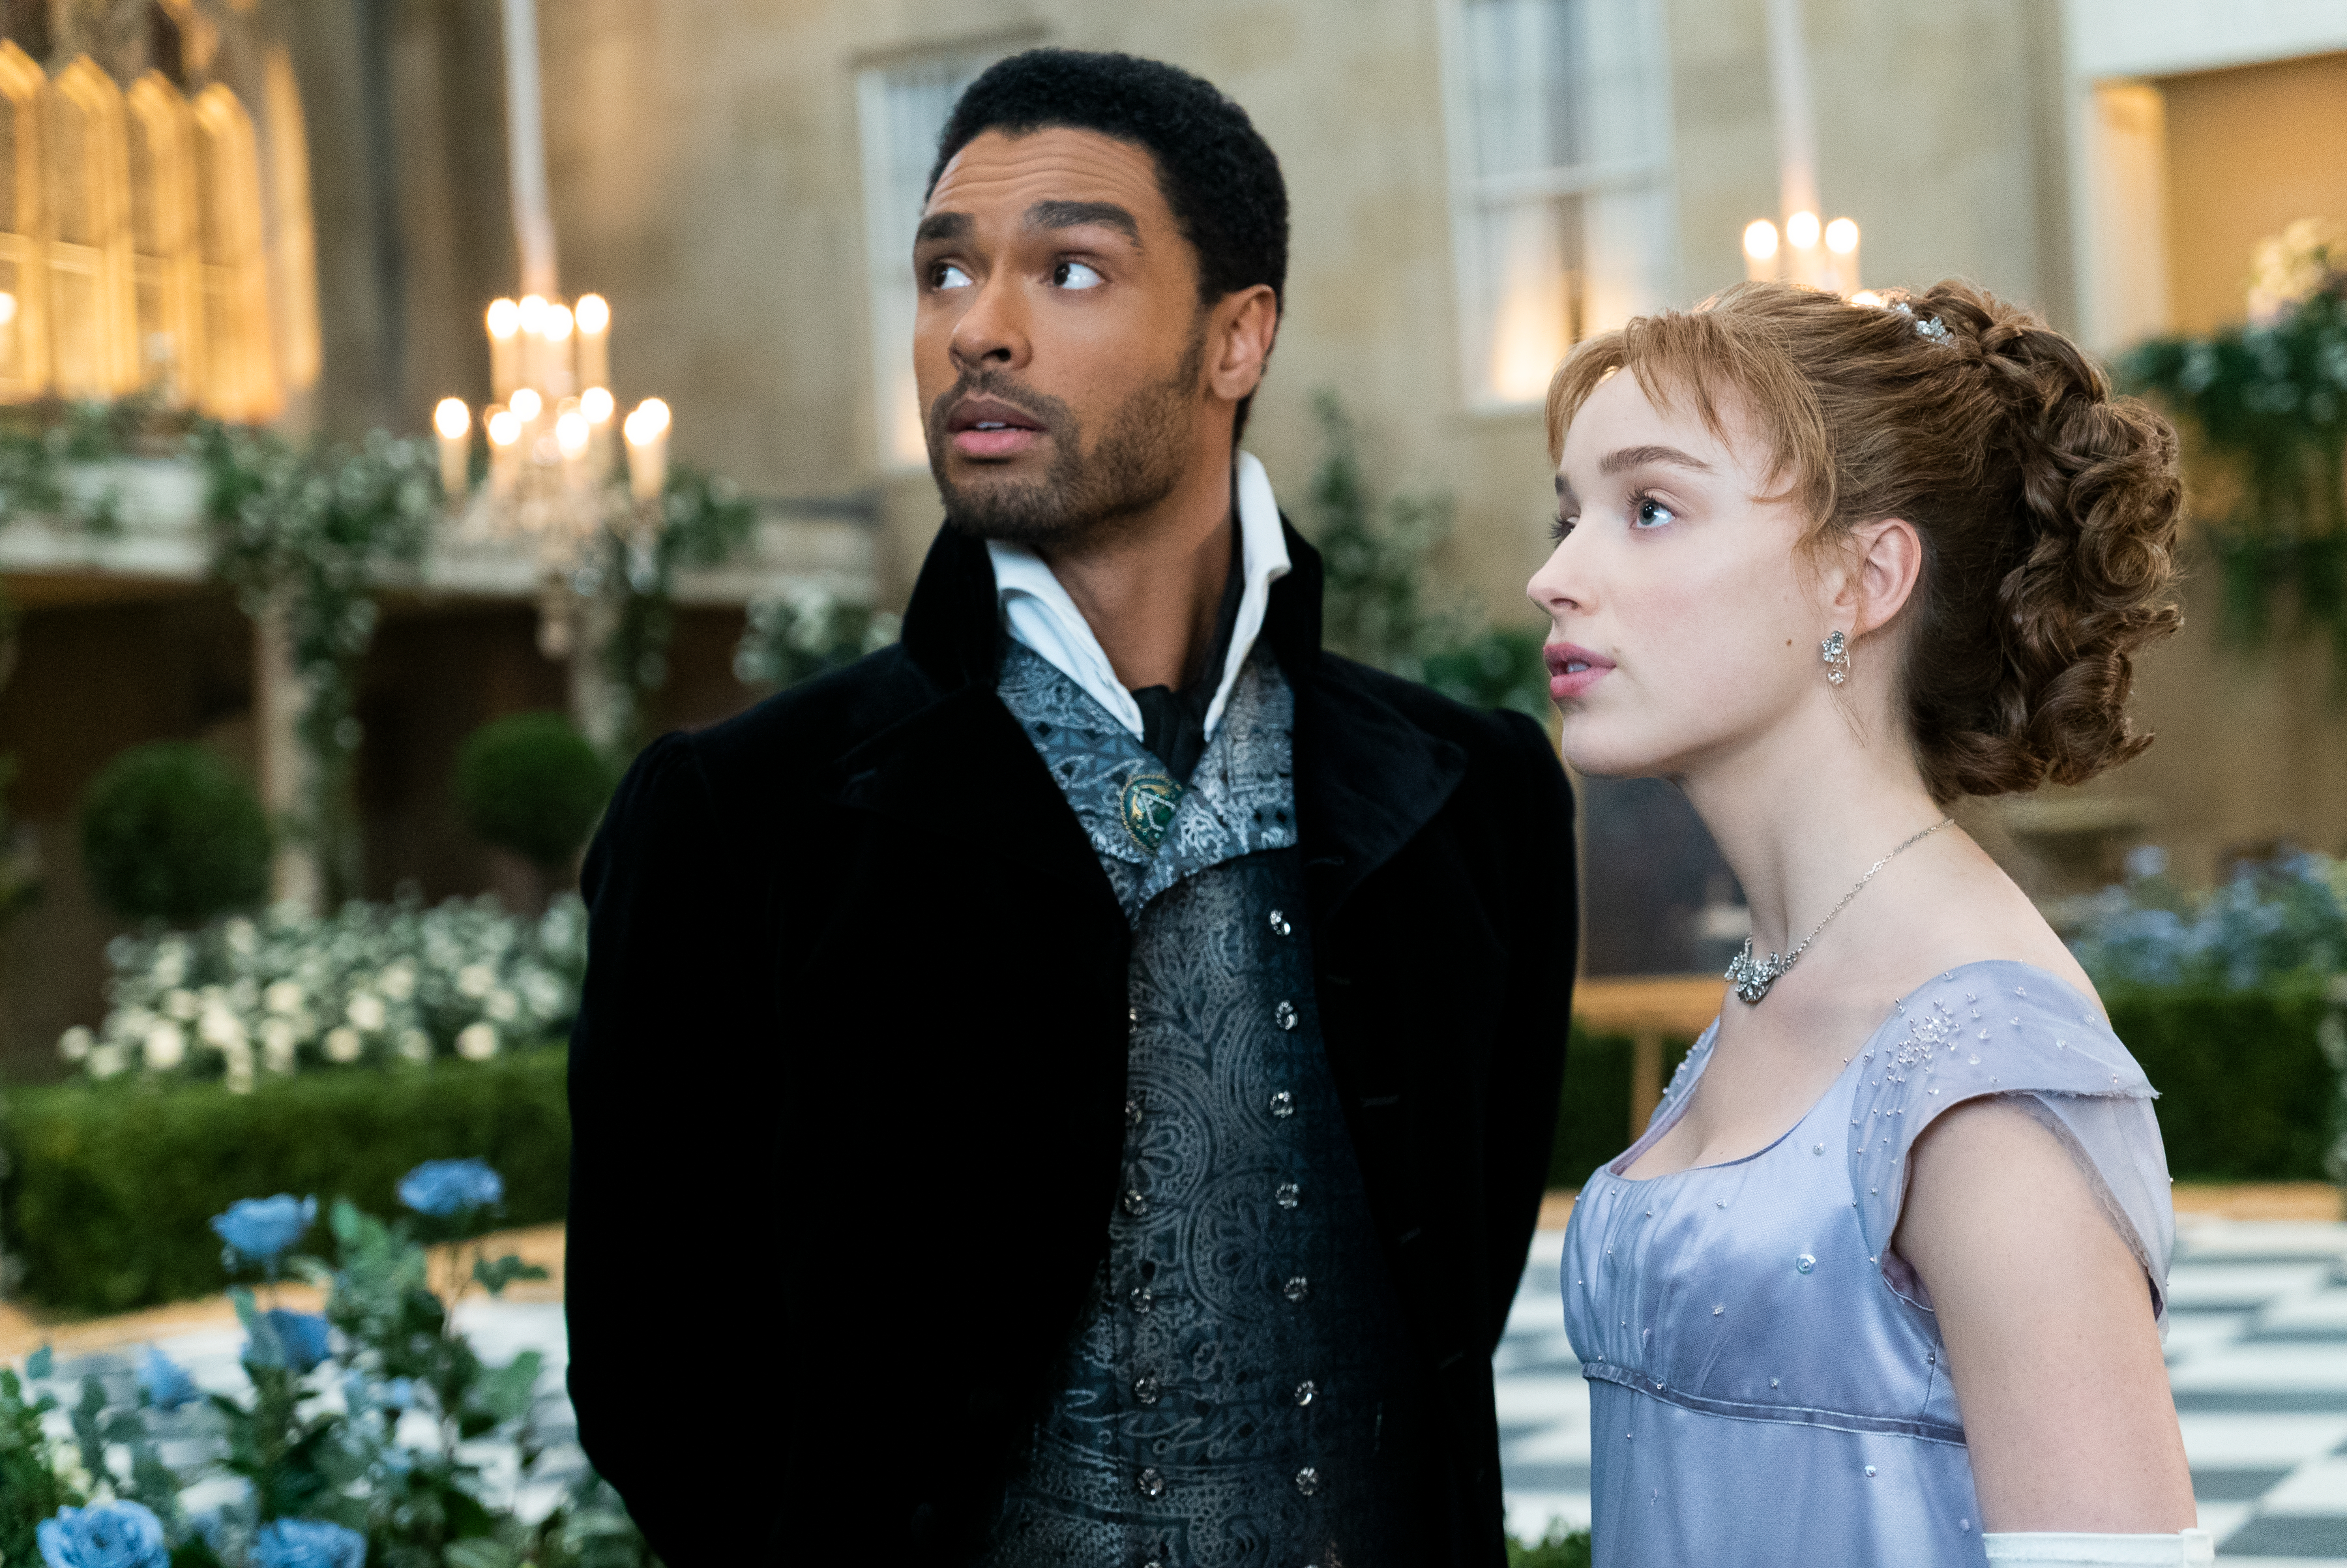 A white woman and a Black man walk together into a party. Both are dressed up in Regency-era clothing.